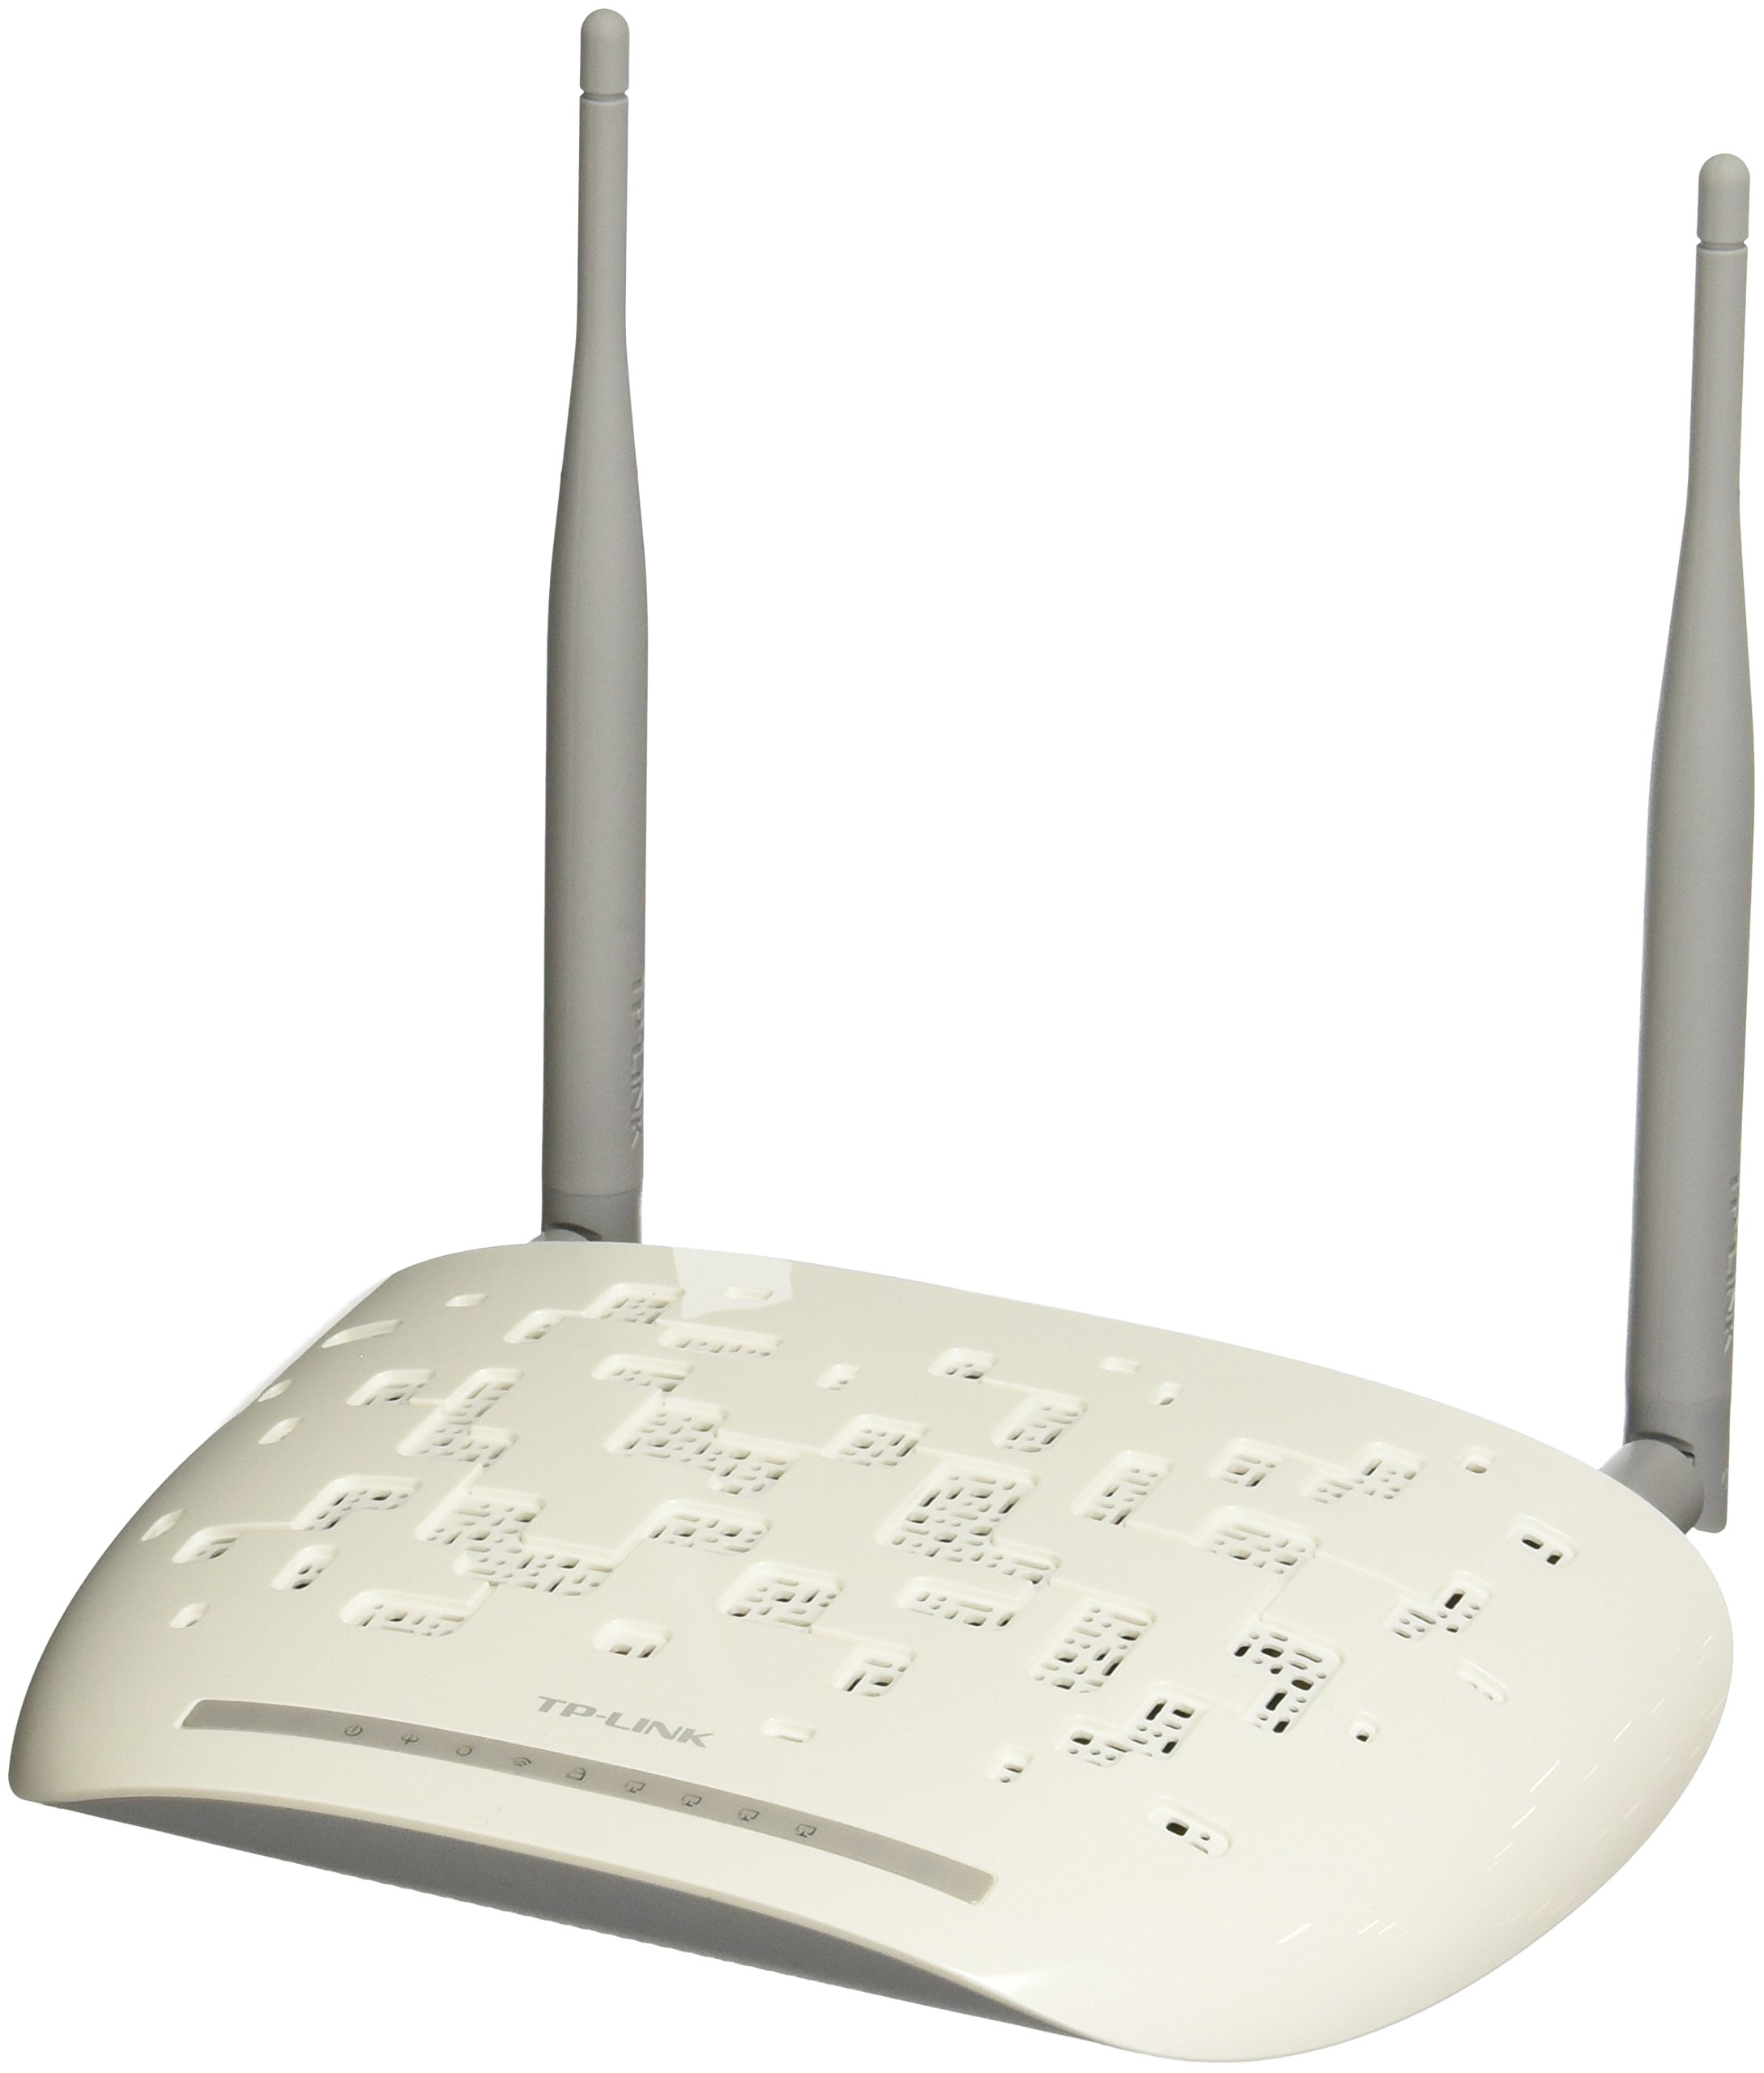 TP-Link N300 ADSL2+ Wireless Wi-Fi Modem Router (TD-W8961ND) by TP-Link